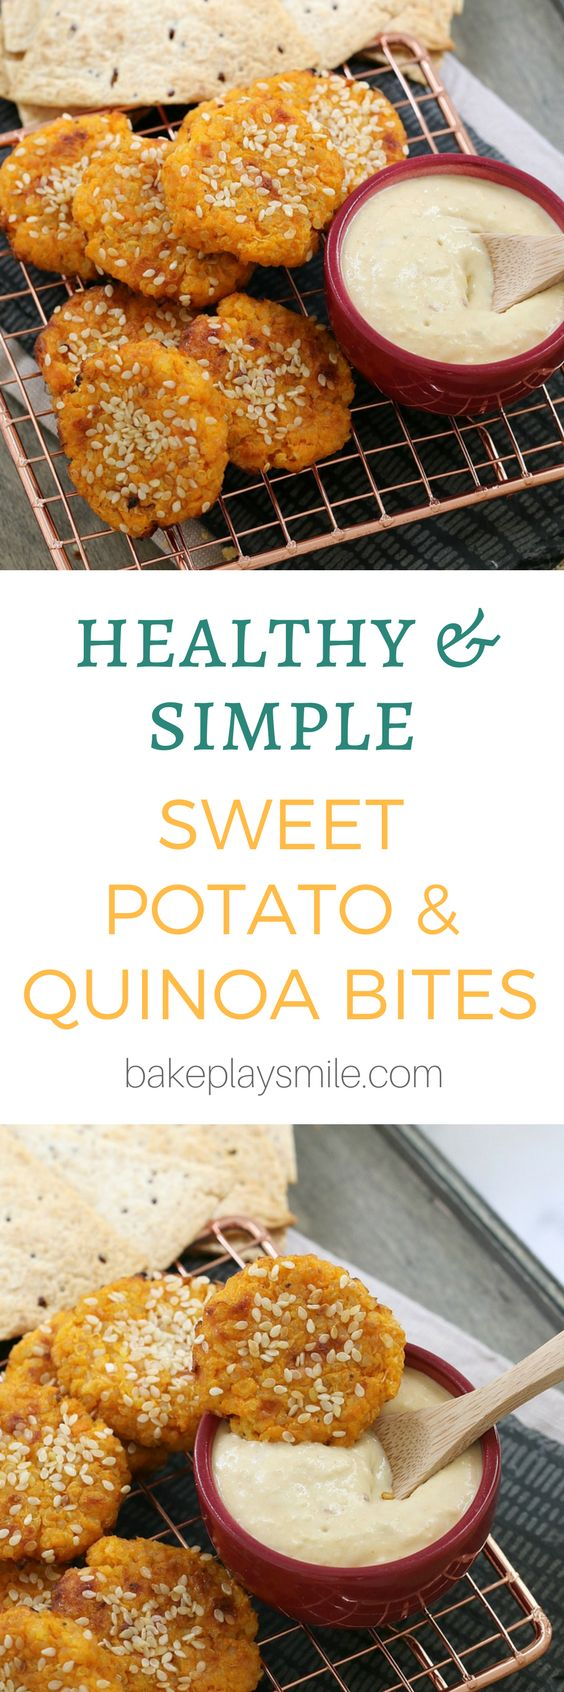 Sweet Potato Quinoa Bites.